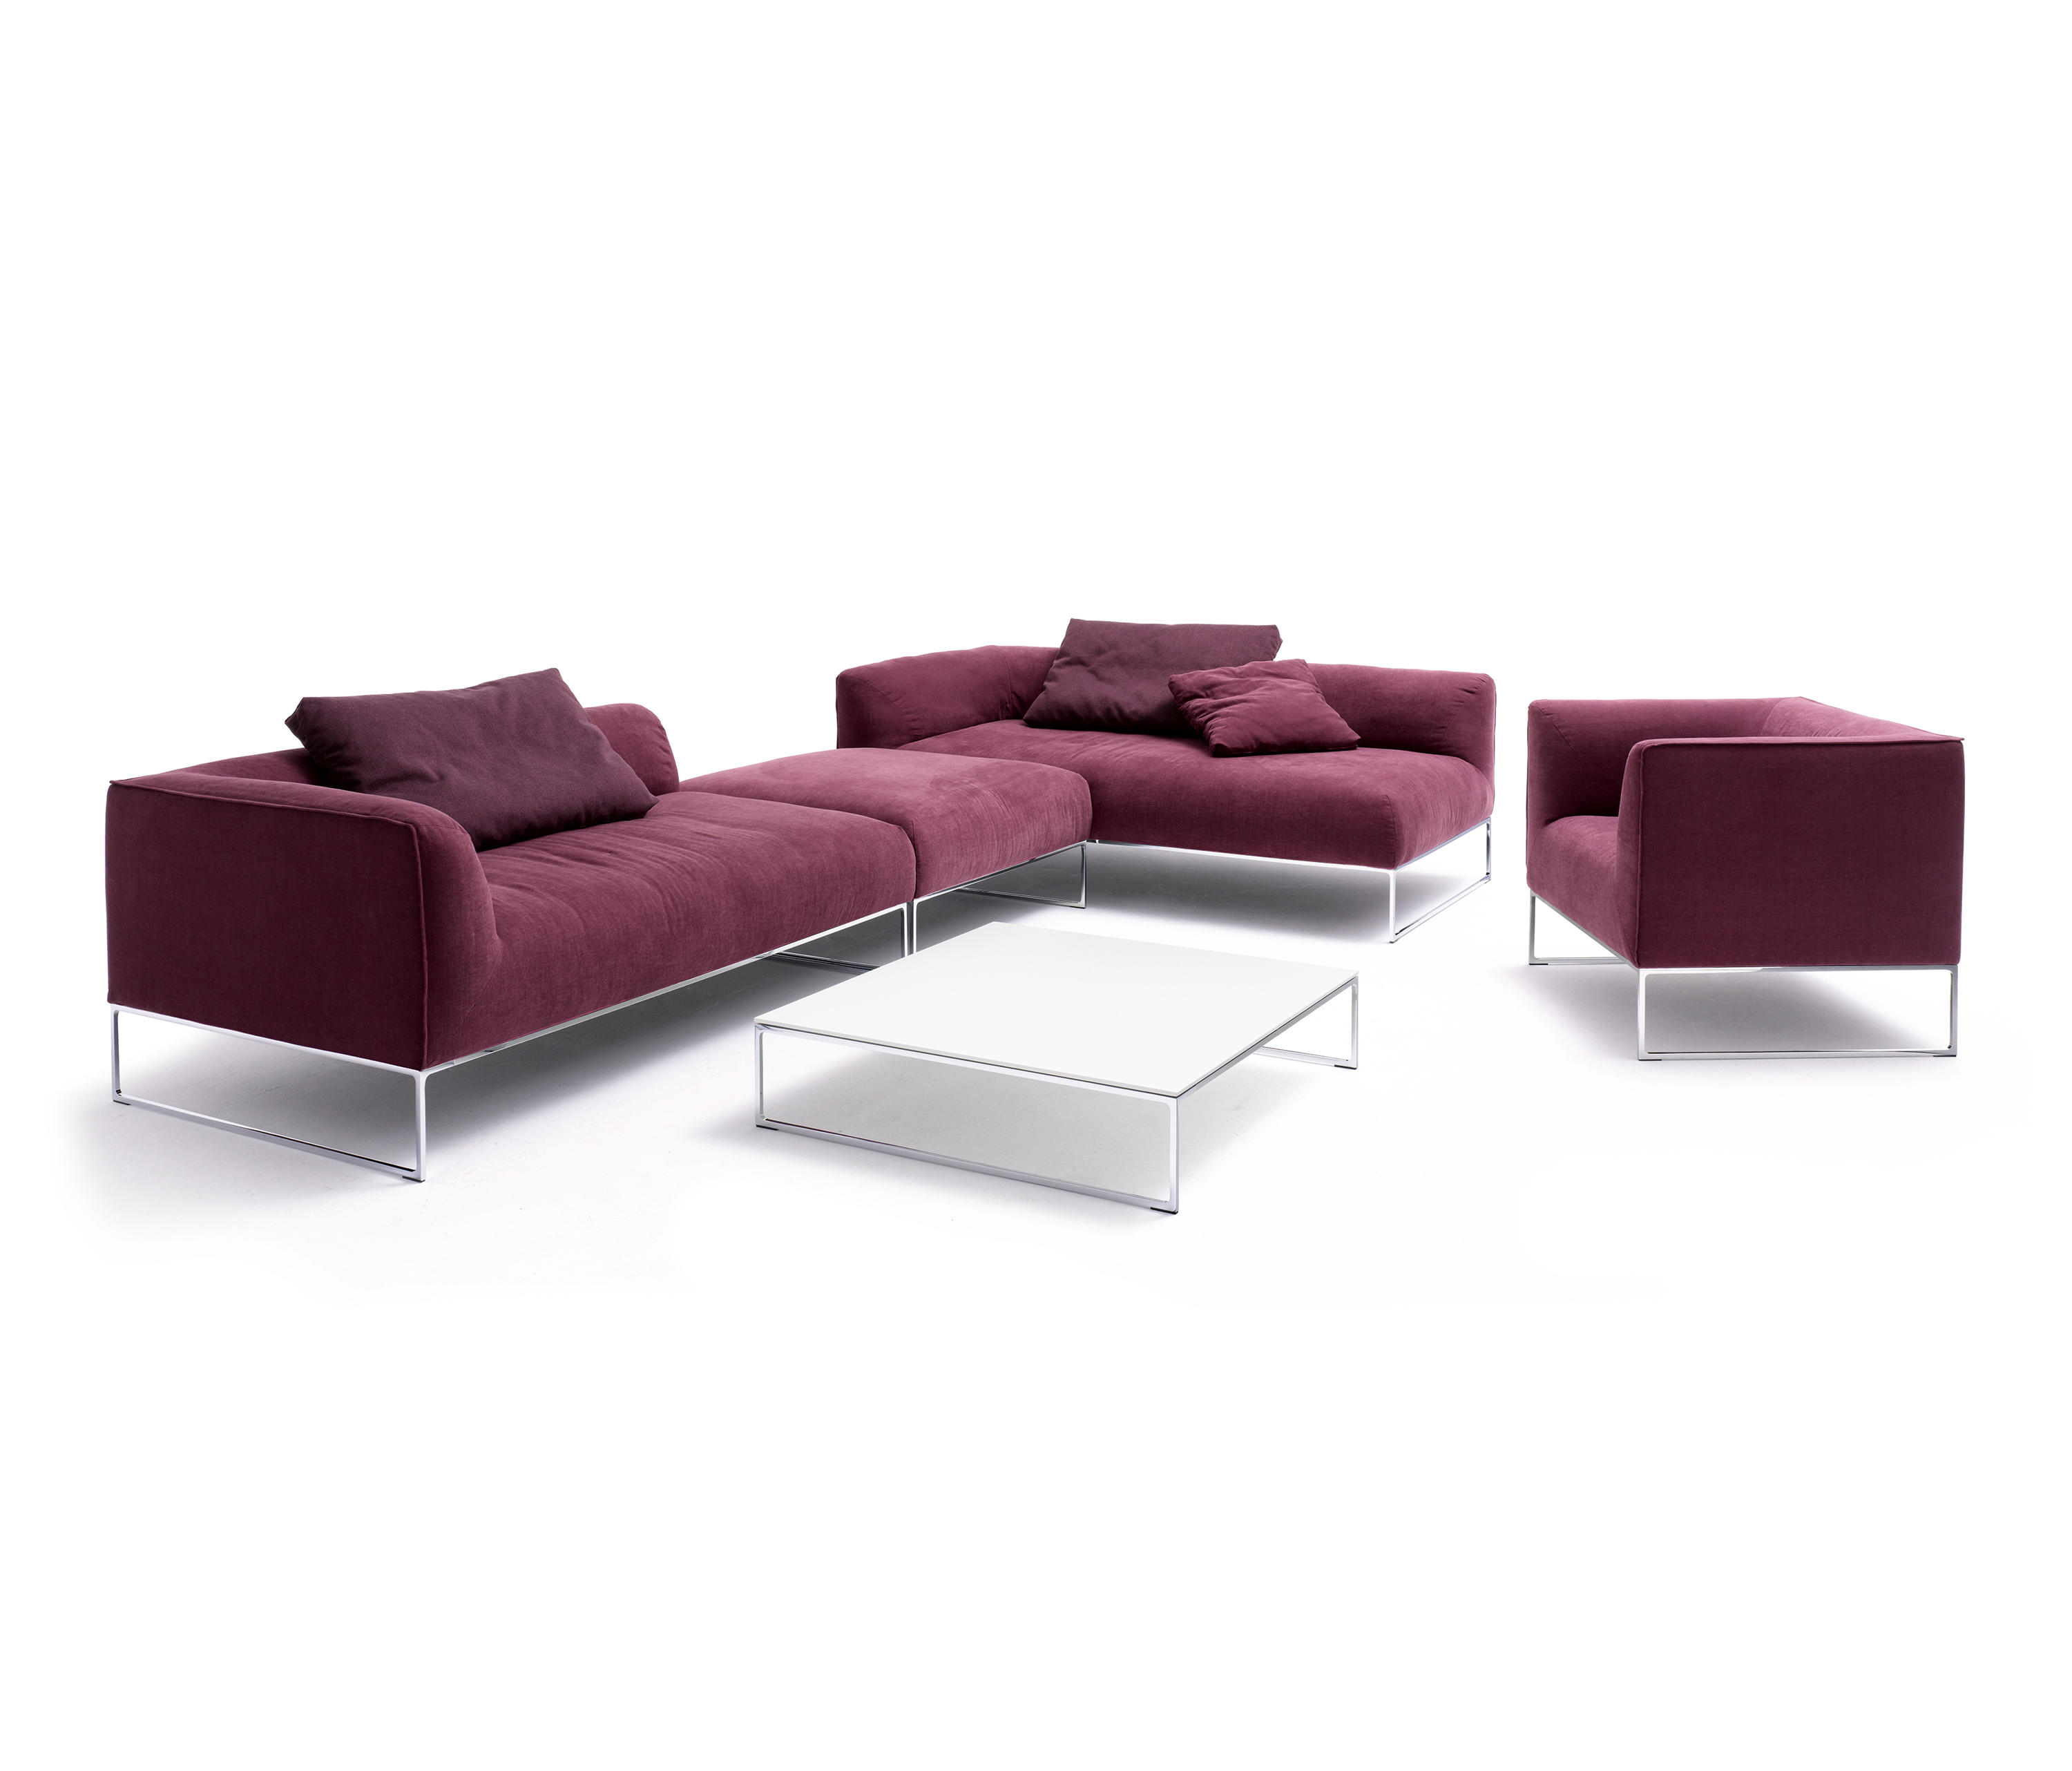 mell lounge lounge sofas by cor architonic. Black Bedroom Furniture Sets. Home Design Ideas